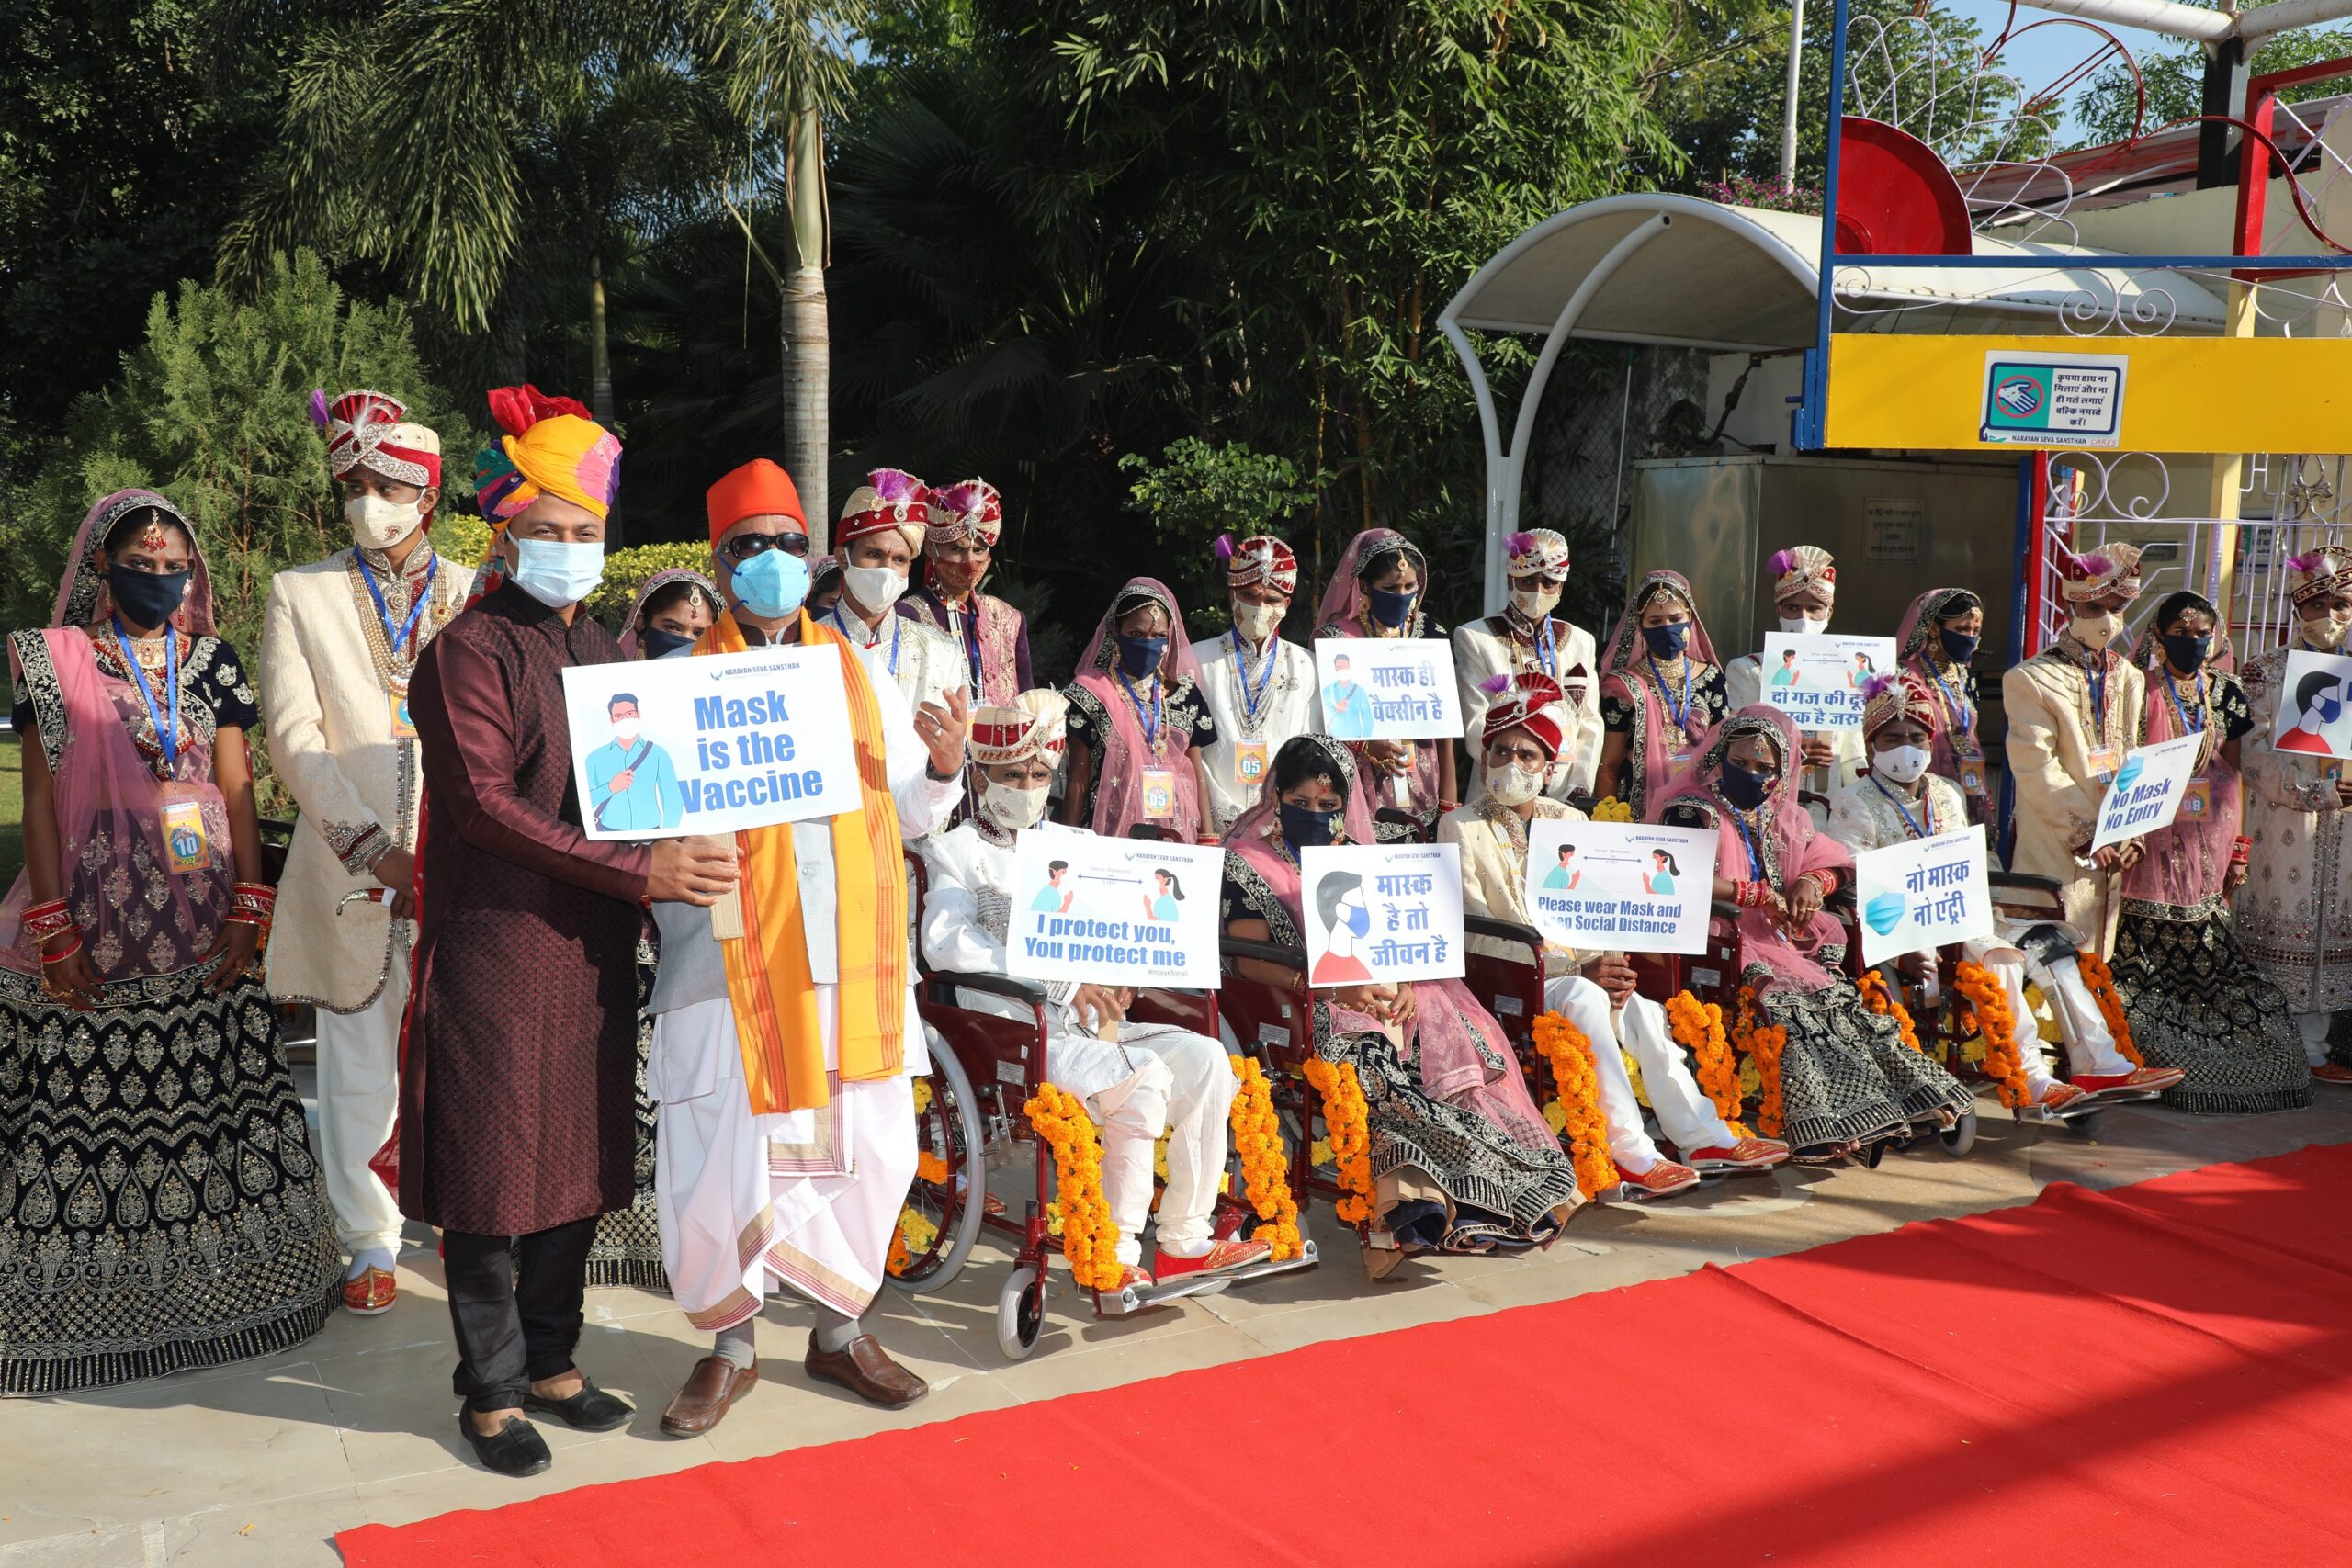 11 differently abled and underprivileged couples tie knots, vowing to wear masks at the 35th mass wedding ceremony